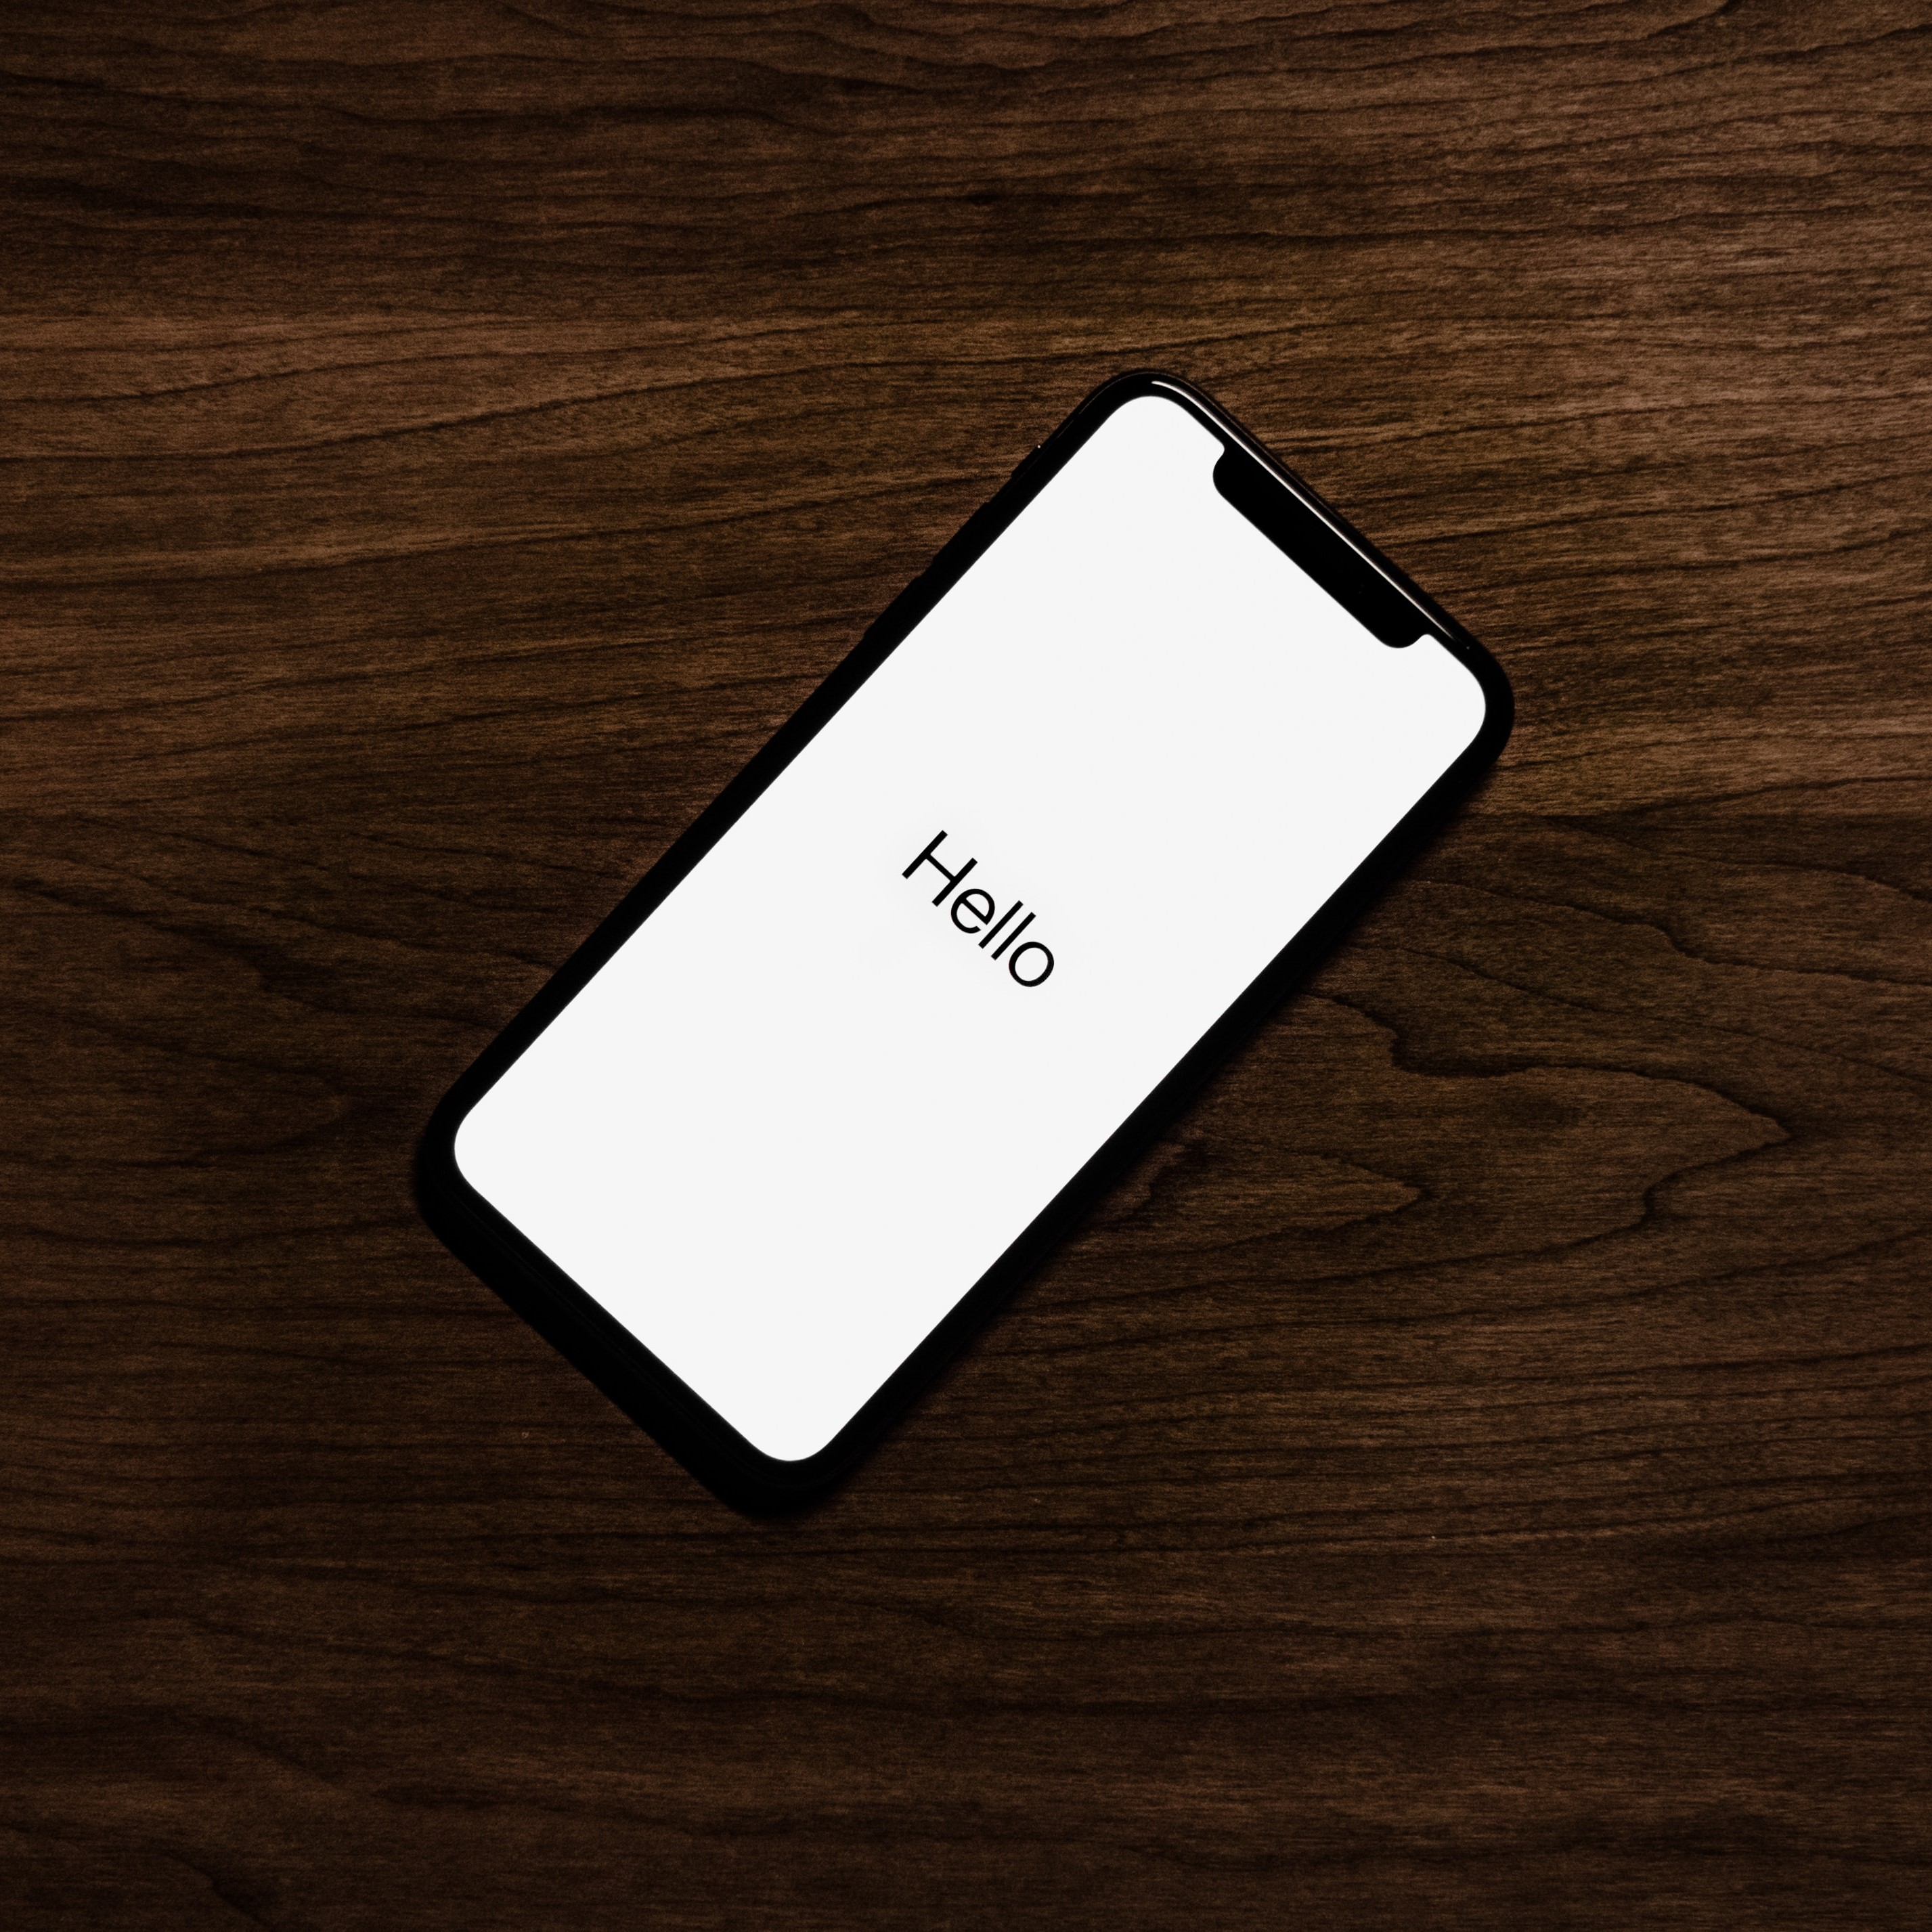 """iPhone X with """"Hello"""" displayed"""